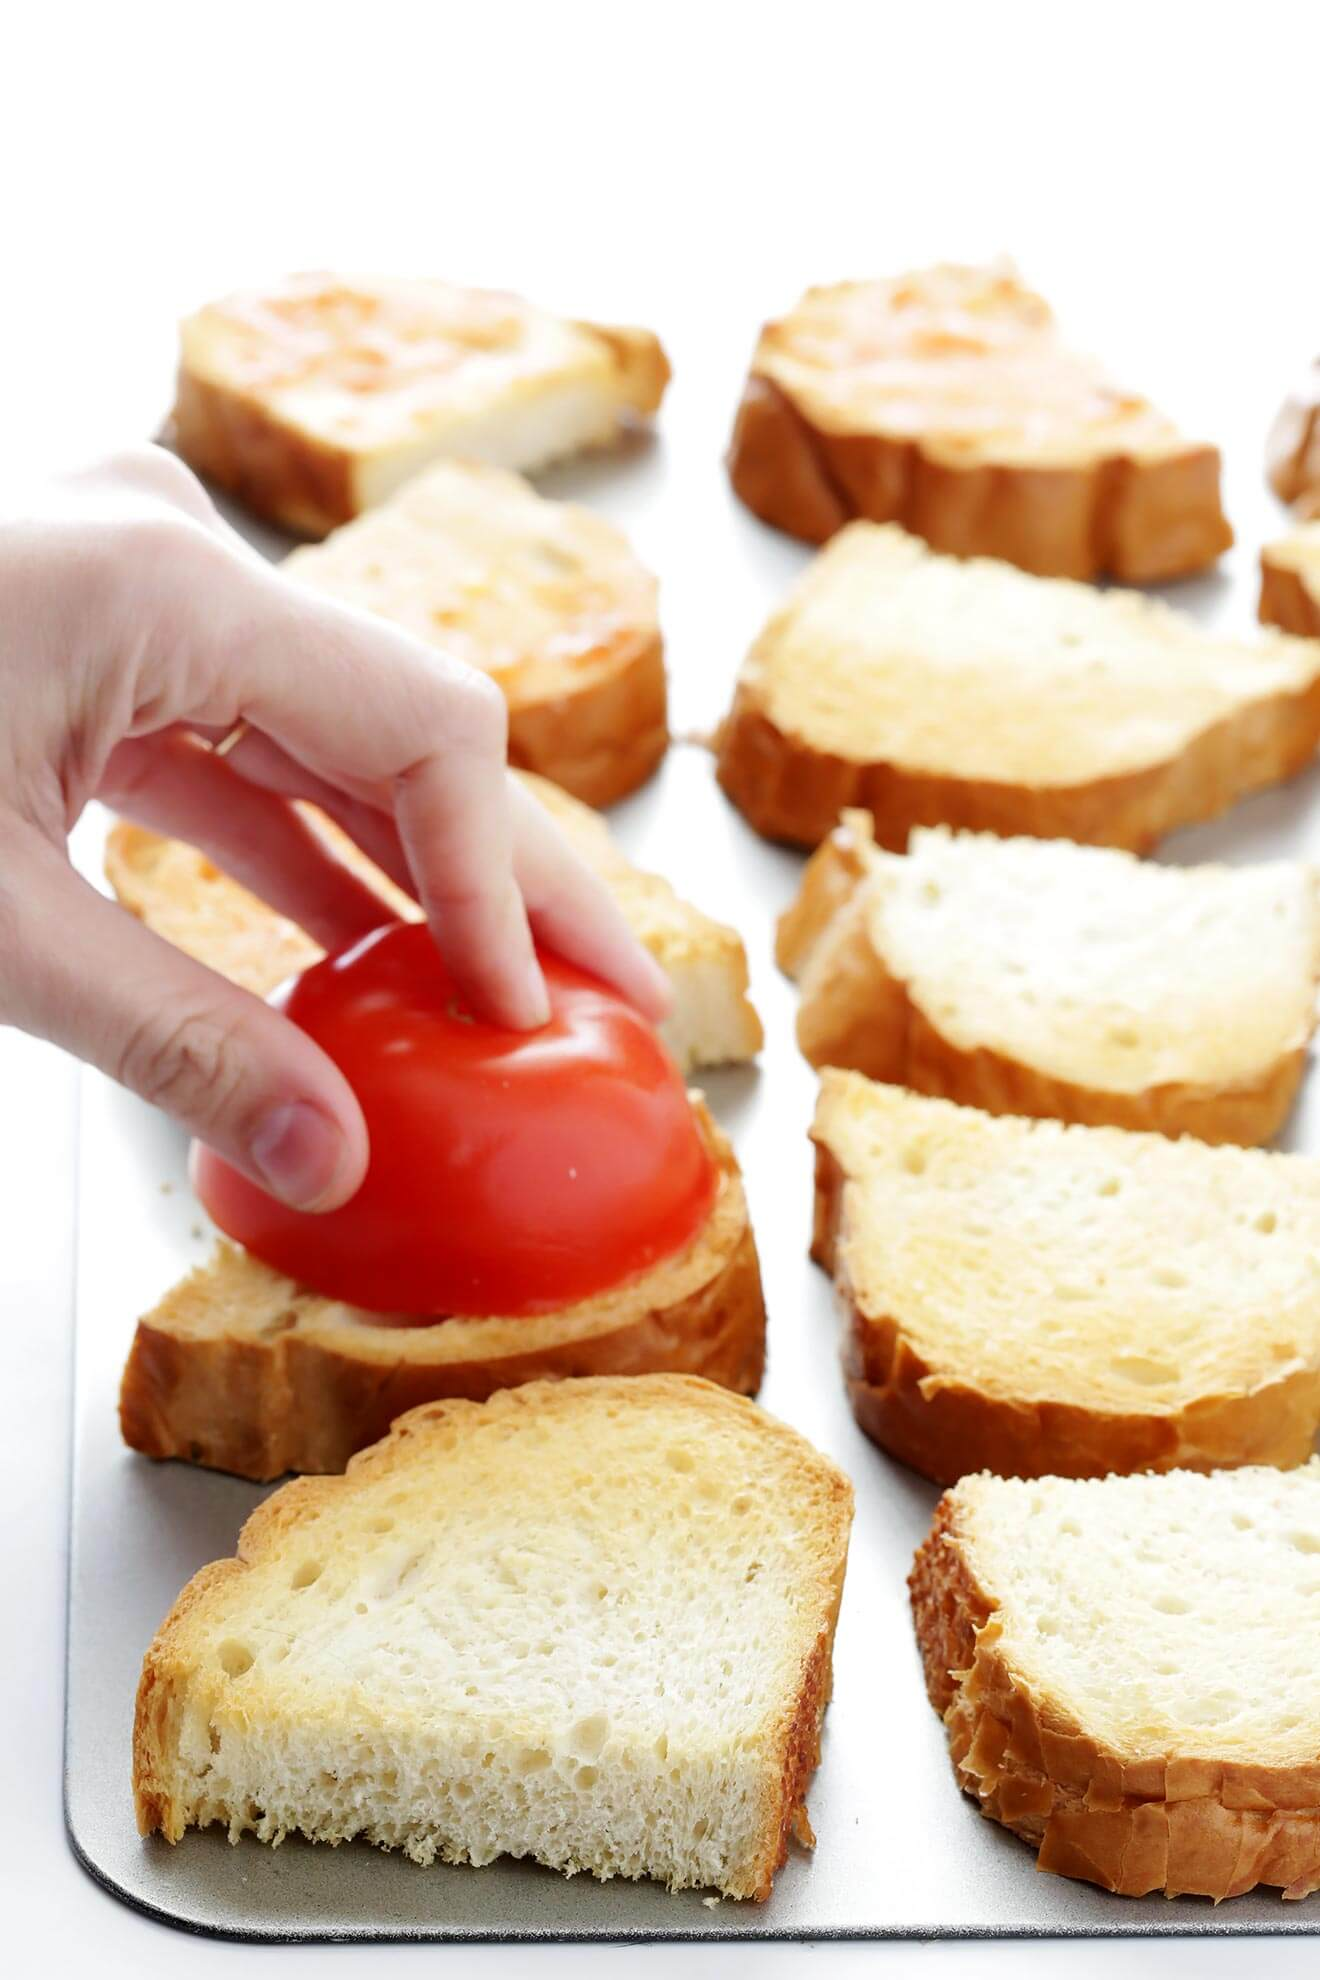 This Spanish Tomato-Rubbed Bread recipe is SUPER quick and easy to make, and so fresh and delicious! | gimmesomeoven.com